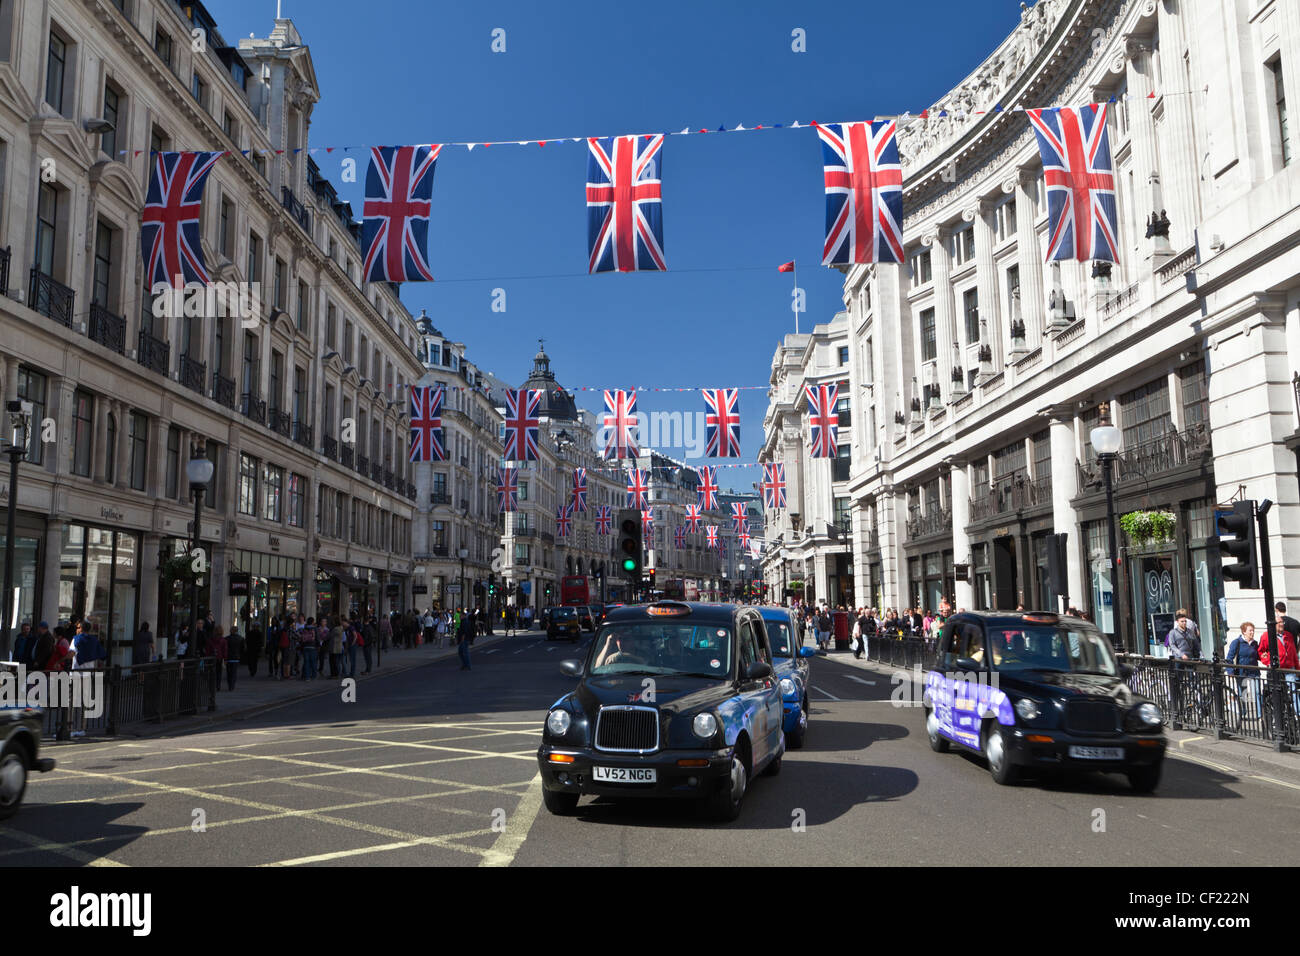 Taxi cabs in Regent Street under red, white and blue bunting strung across the street to celebrate the Royal Wedding - Stock Image